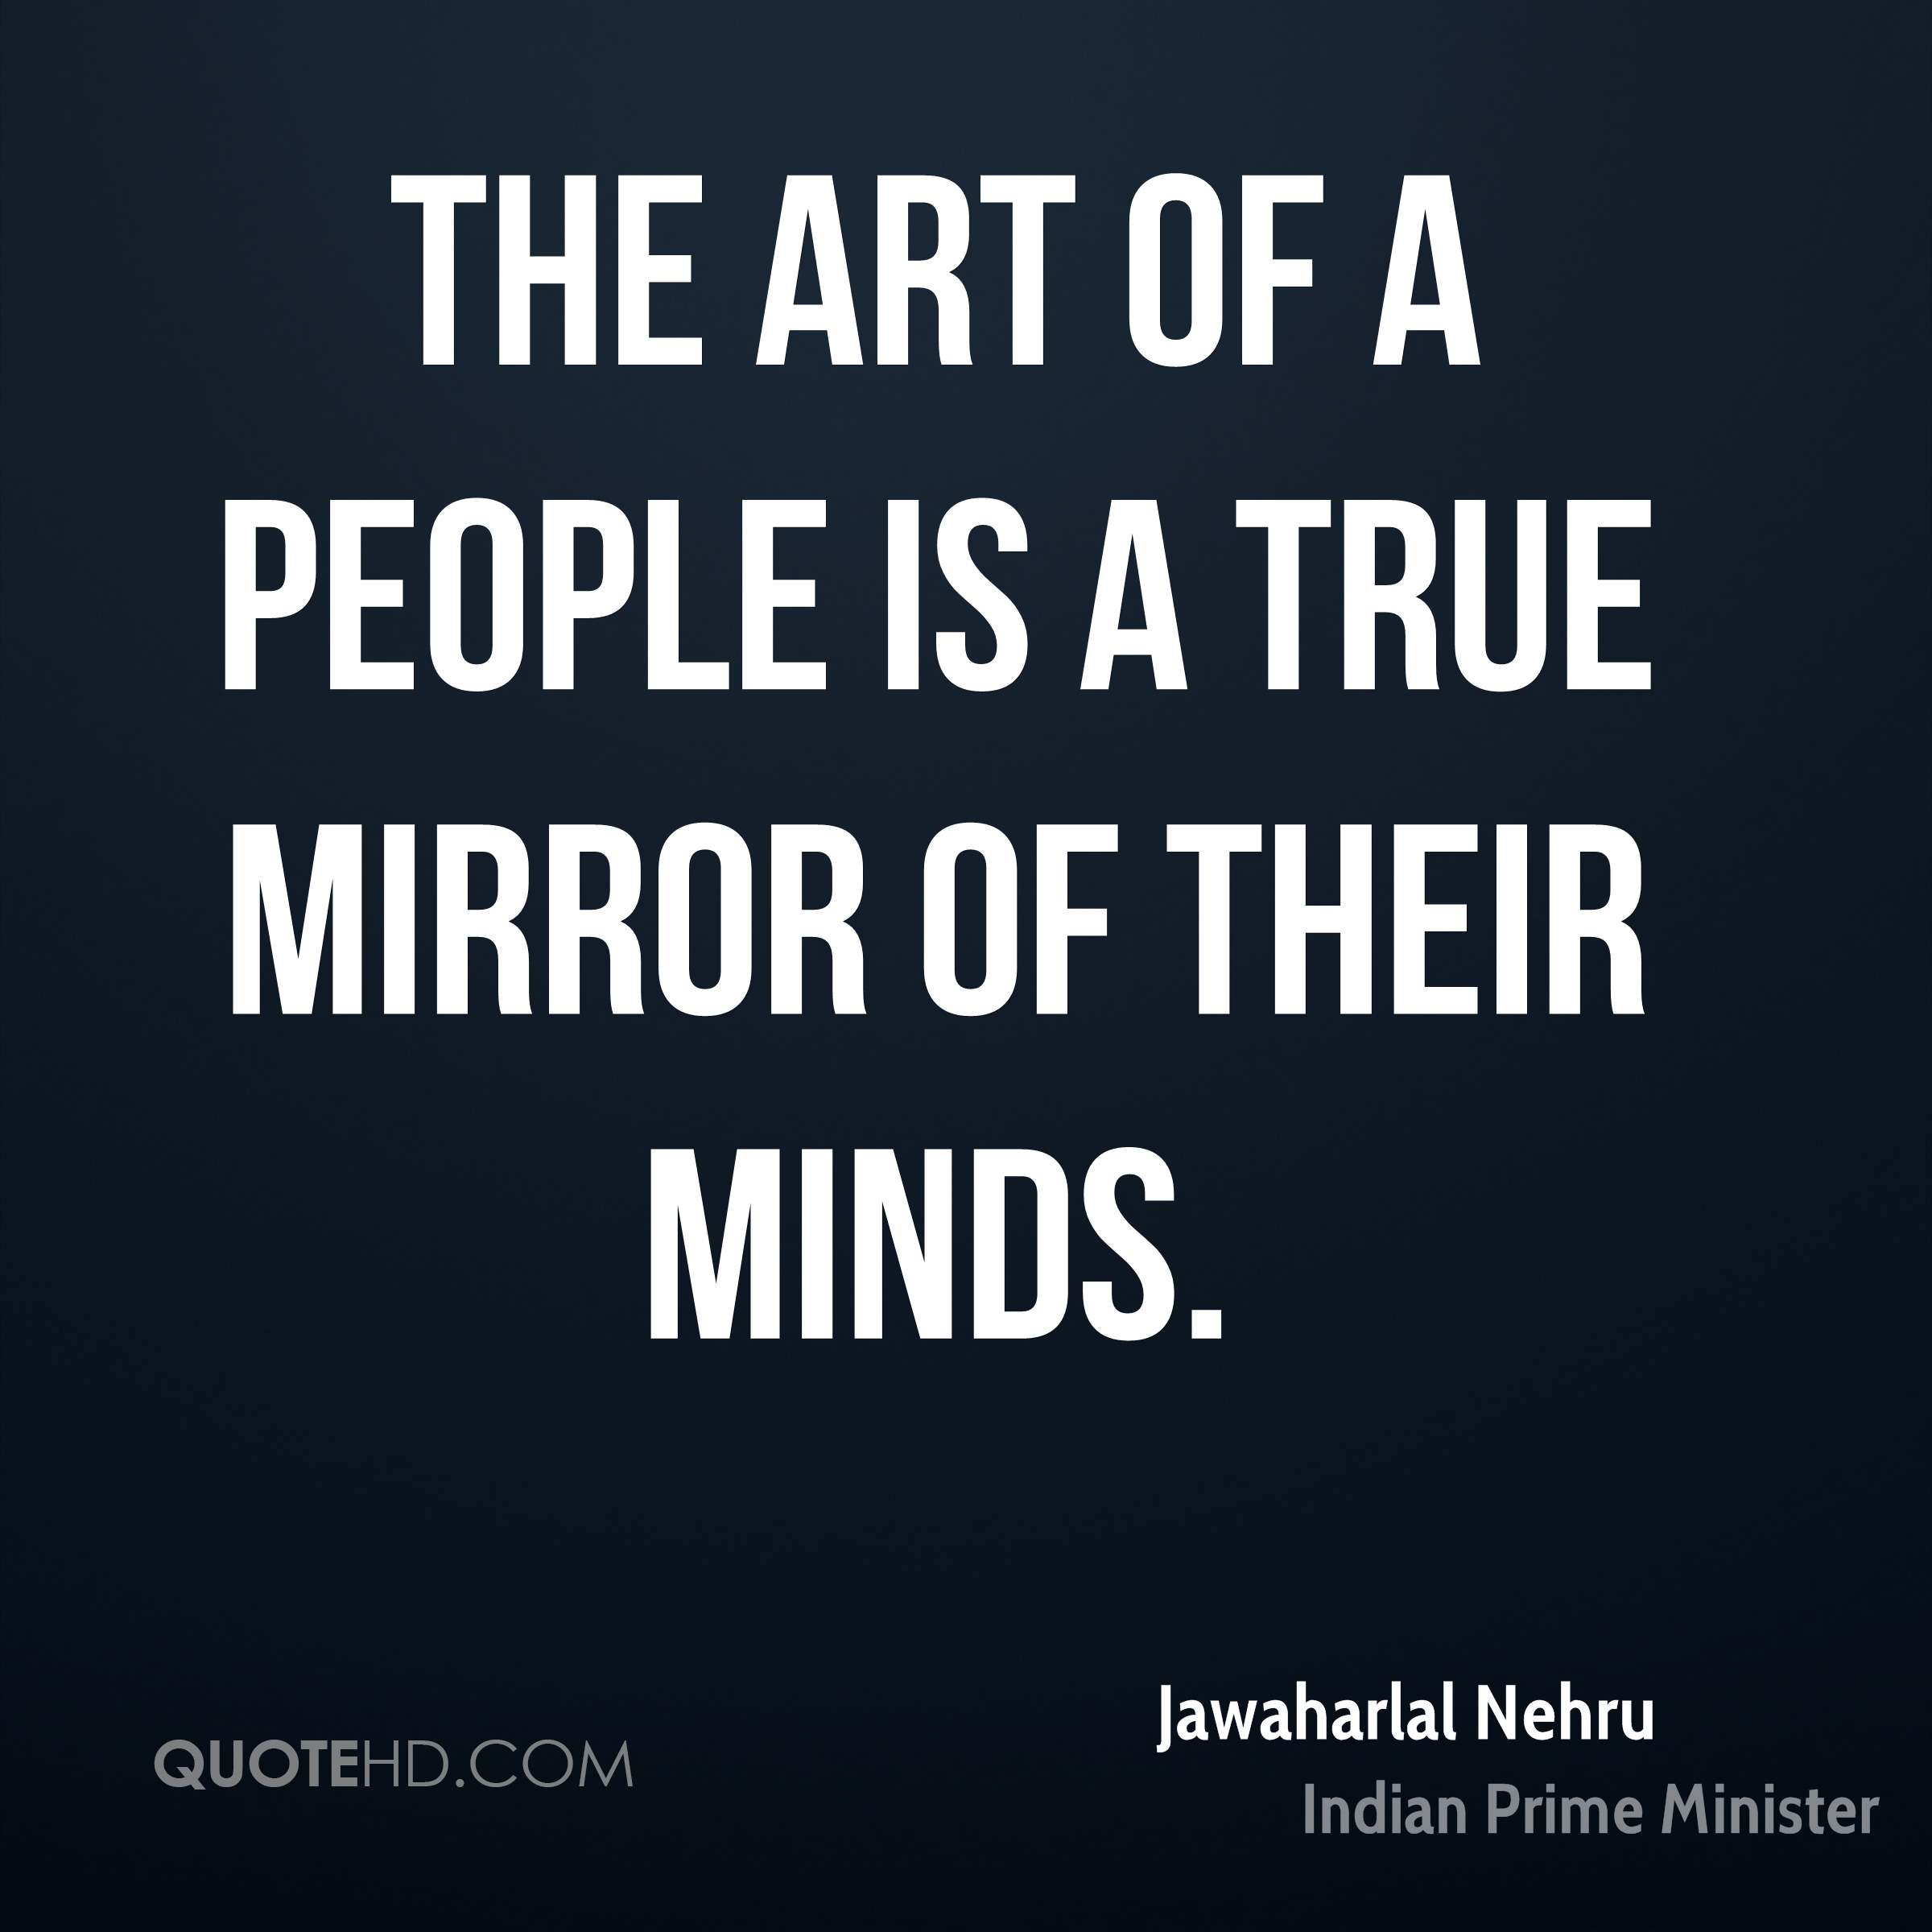 The art of a people is a true mirror of their minds.